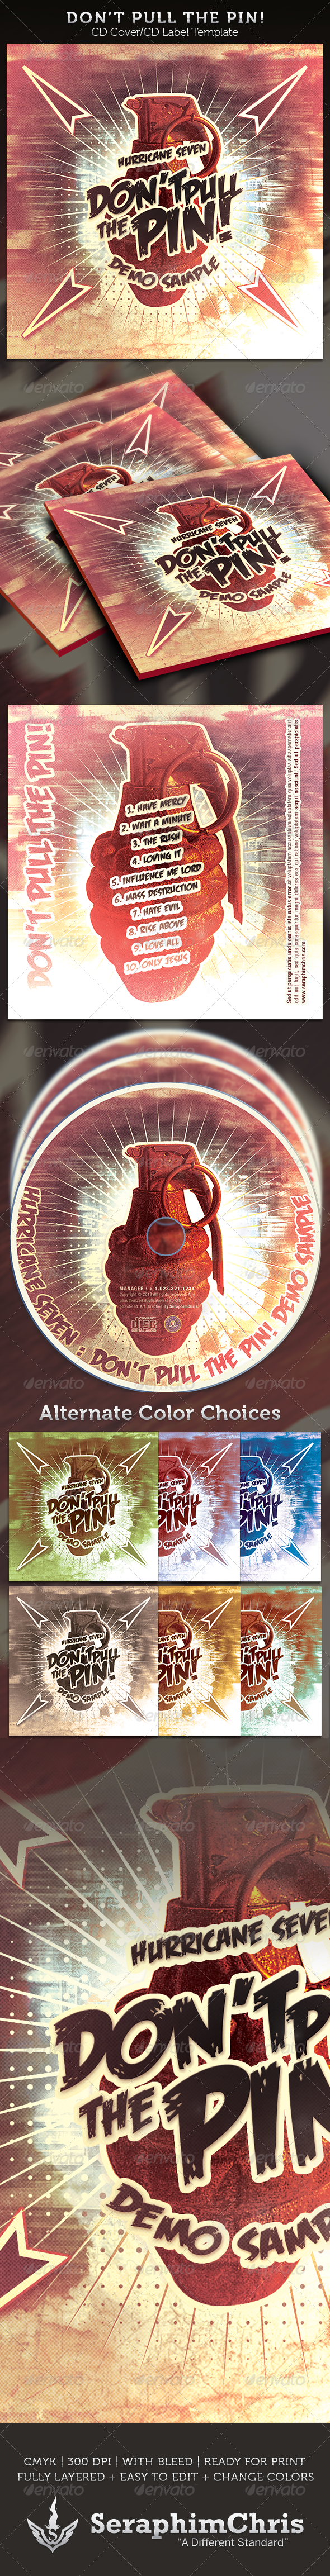 Don't Pull the Pin! CD Cover Artwork Template - CD & DVD artwork Print Templates